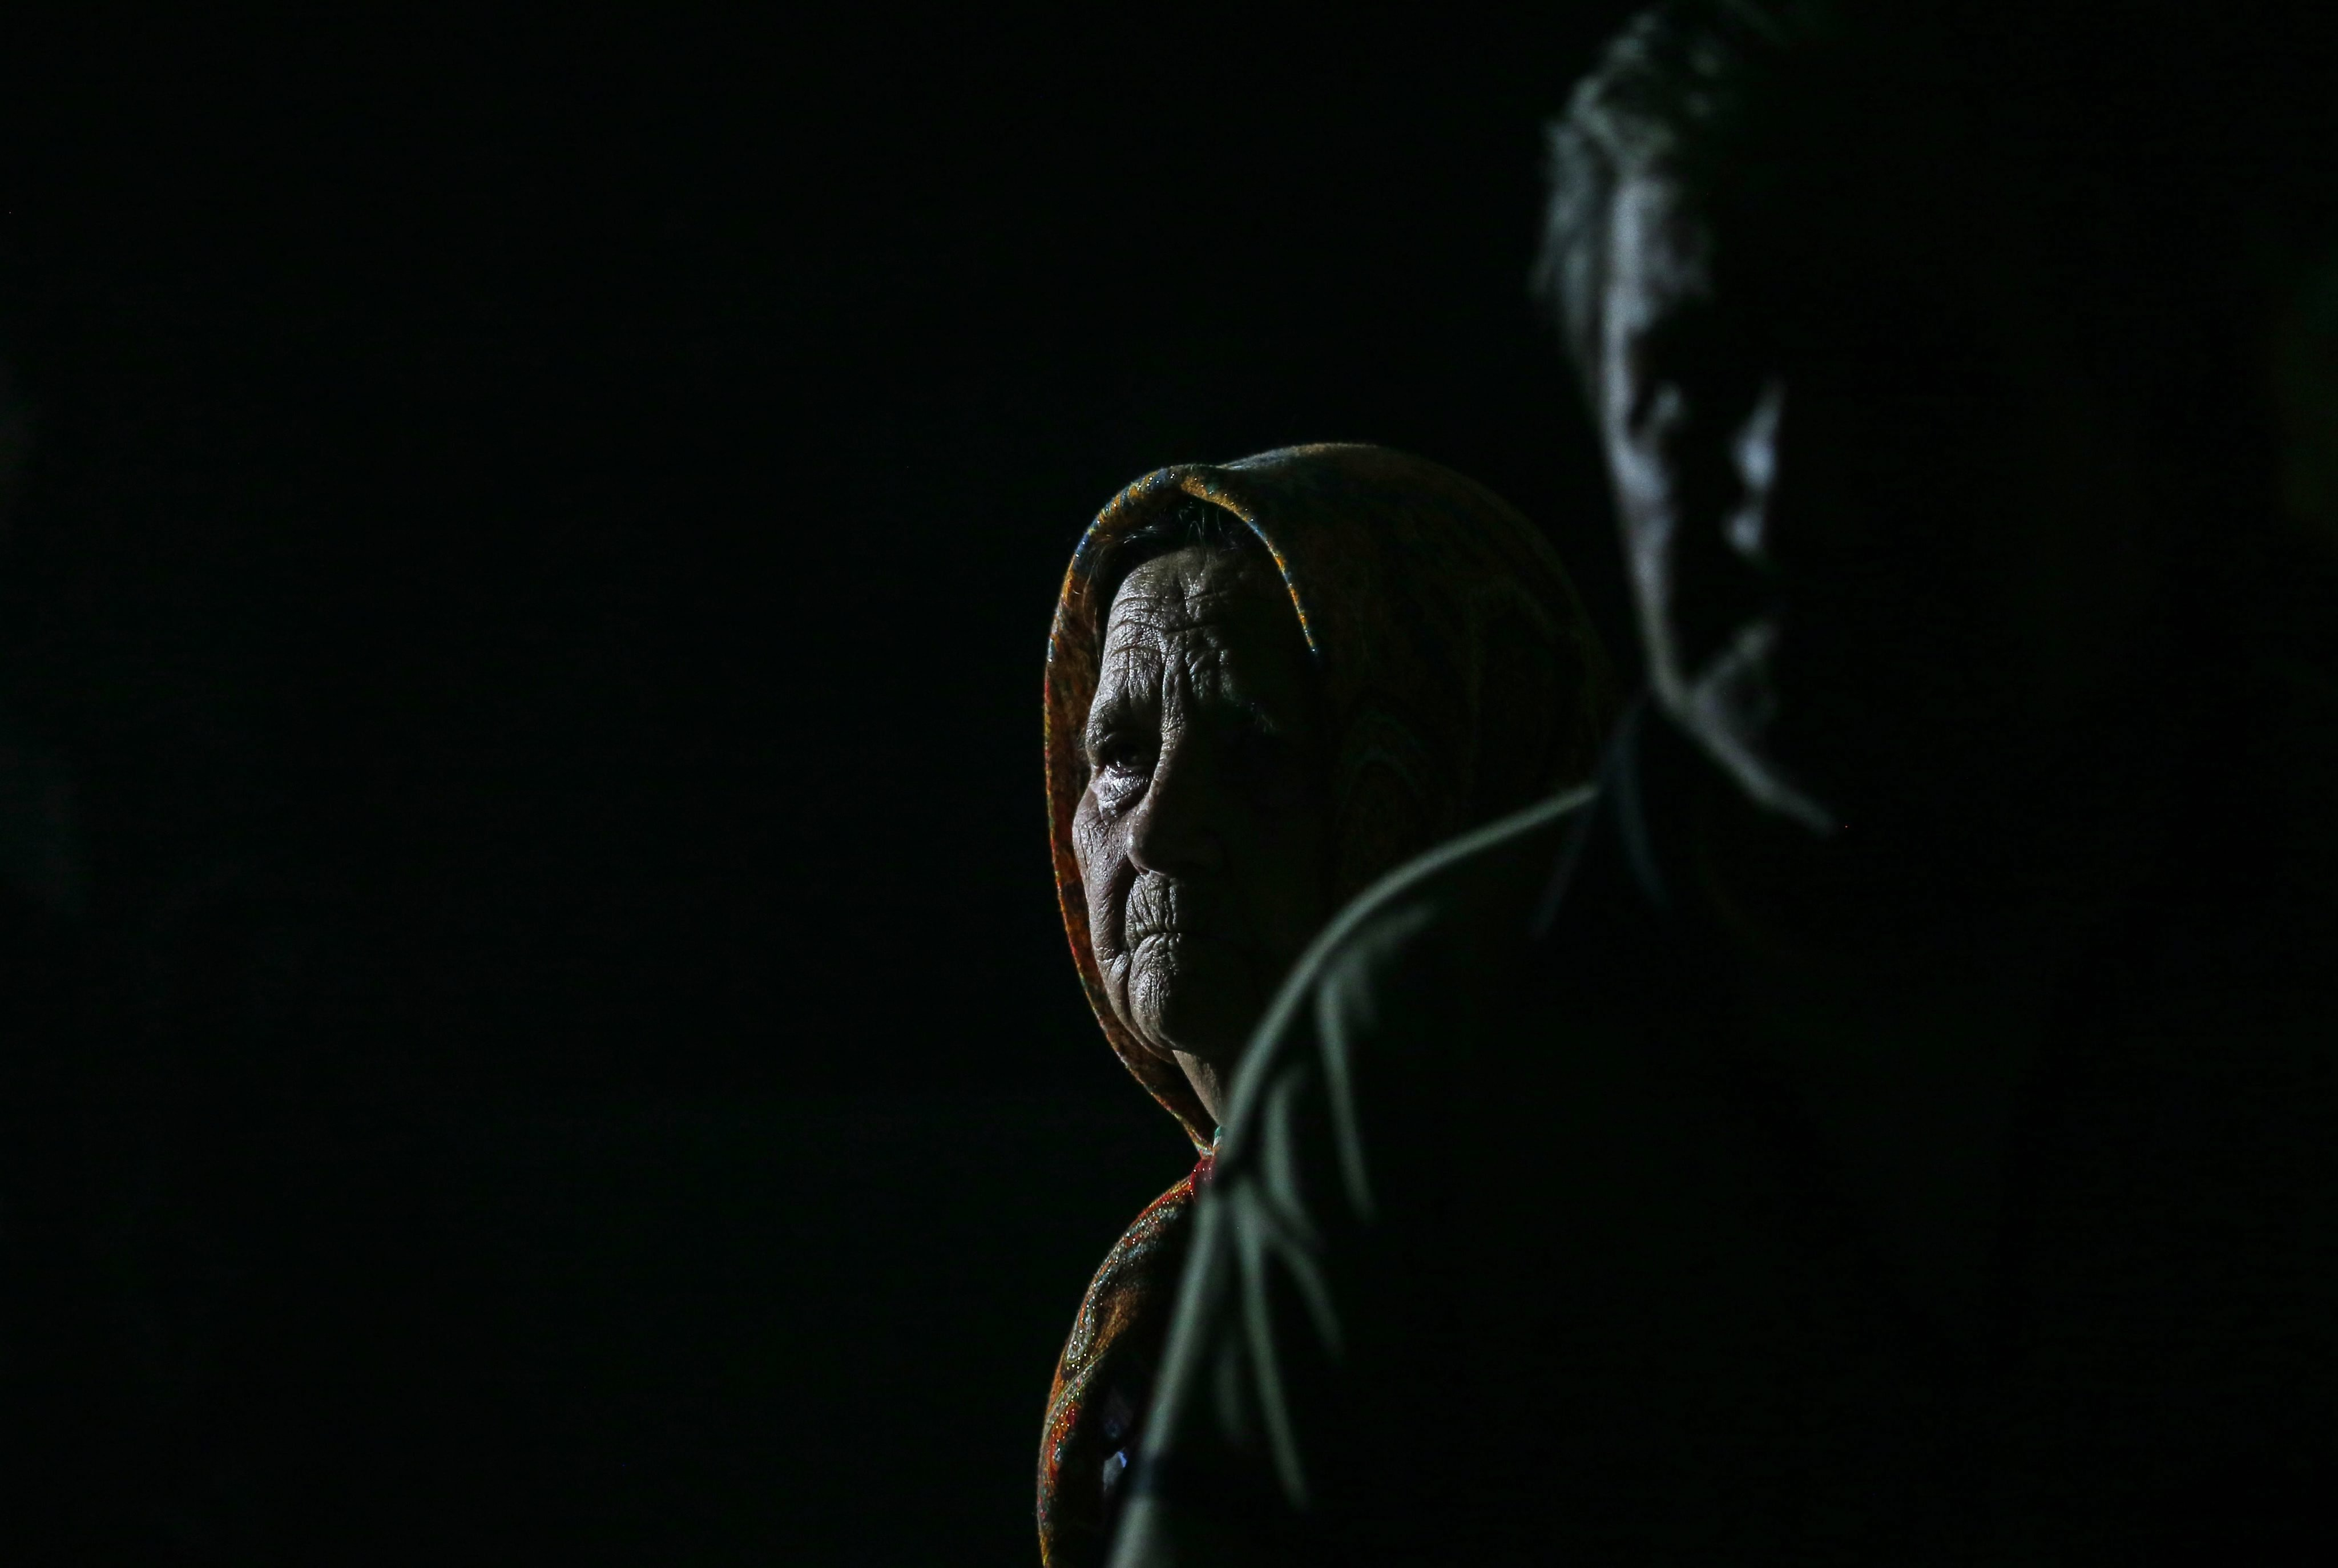 Local people sit in a shelter in Ilovaysk, some 50km from Donetsk, eastern Ukraine on August 14, 2014.